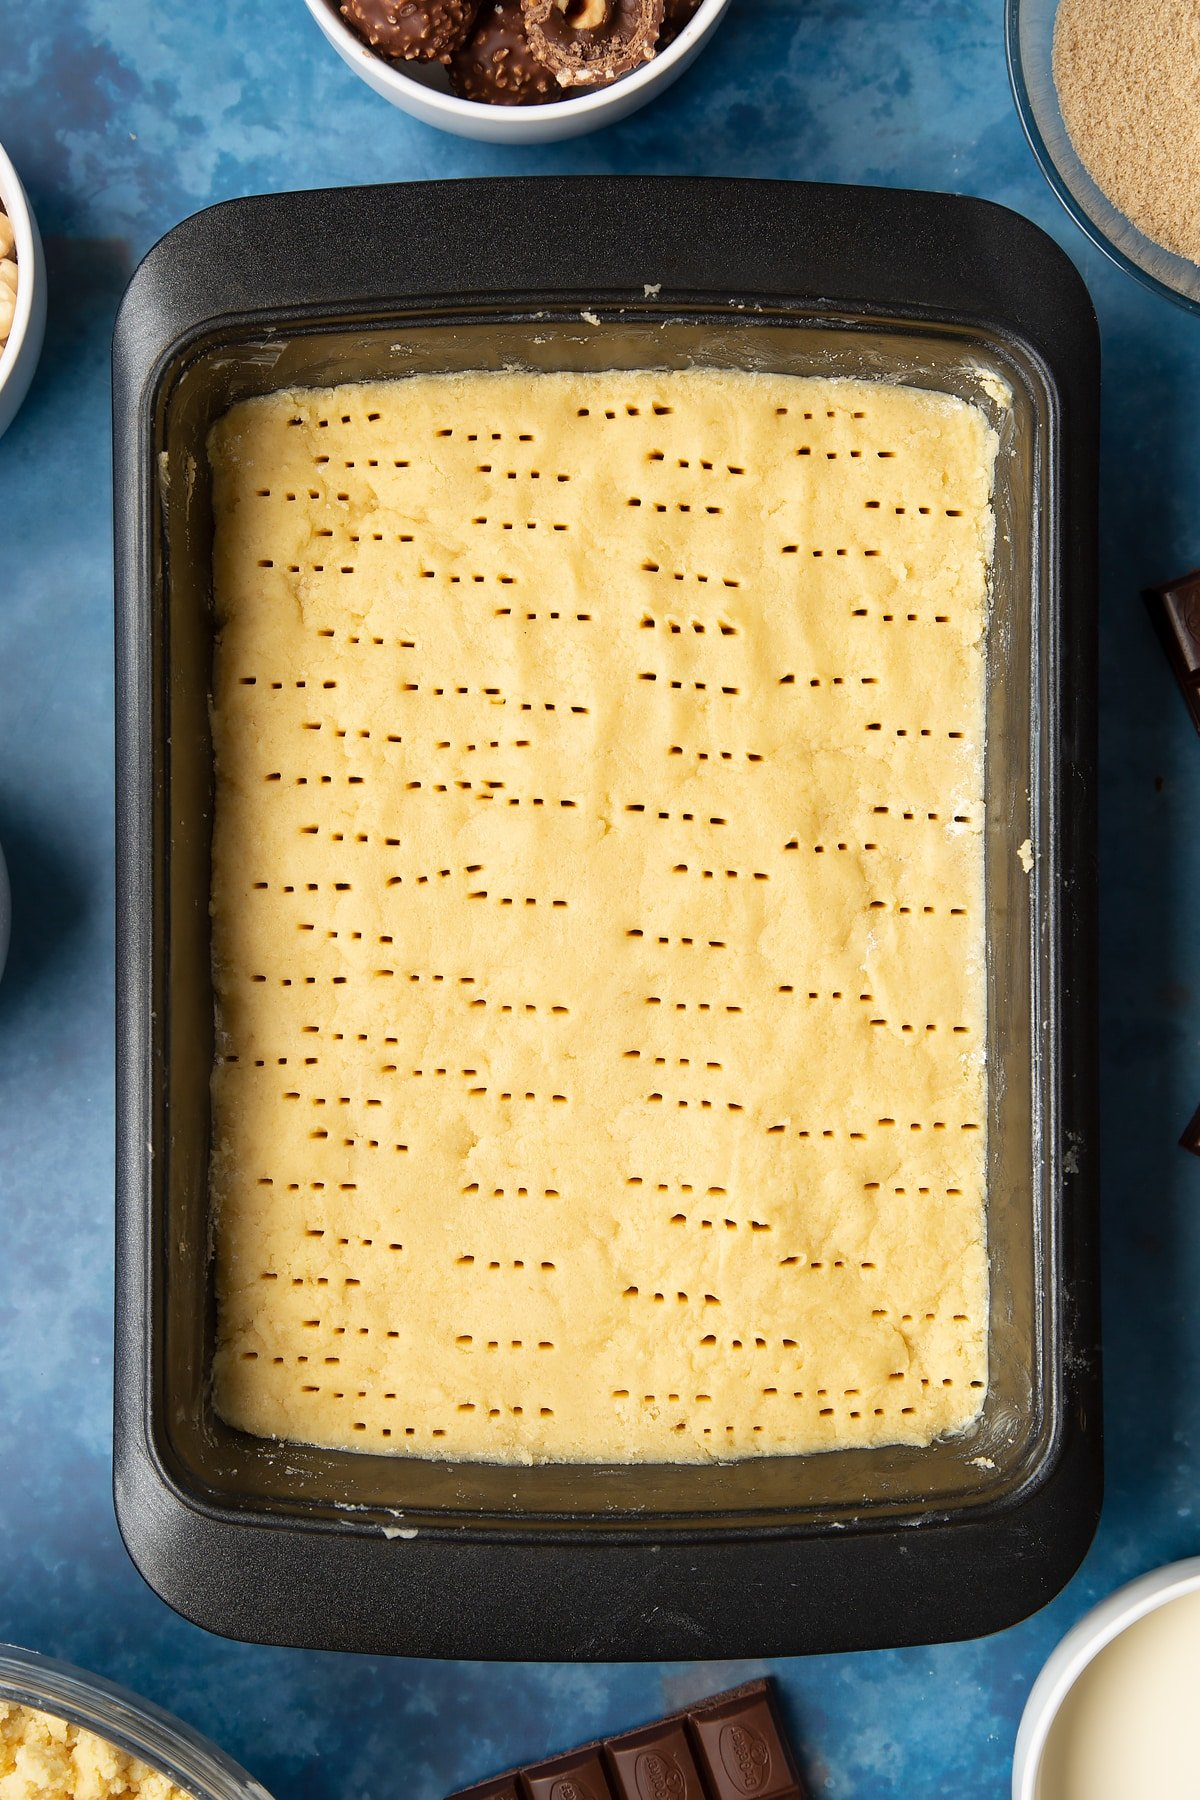 Shortbread dough pressed into a greased tray and pricked with a fork. Ingredients to make a Ferrero Rocher slice surround the tray.